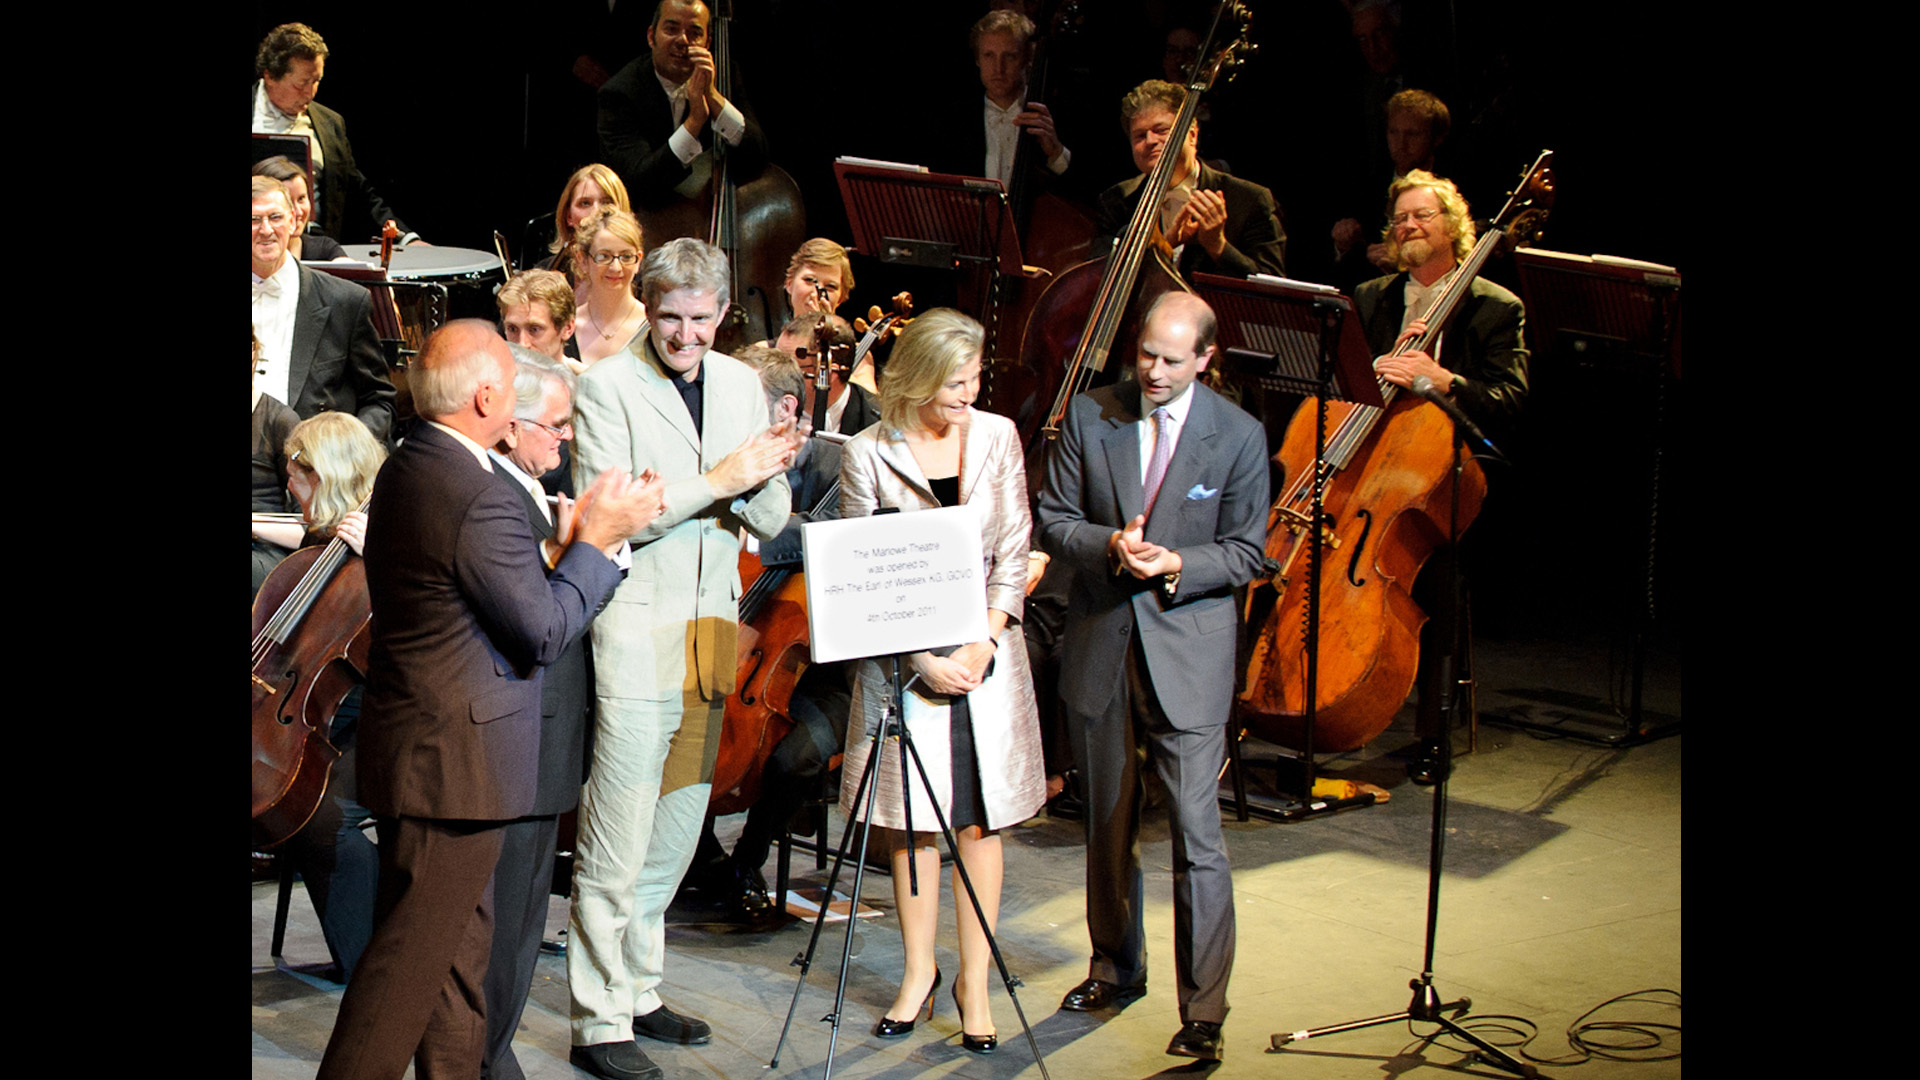 Royal Opening of the Marlowe Theatre